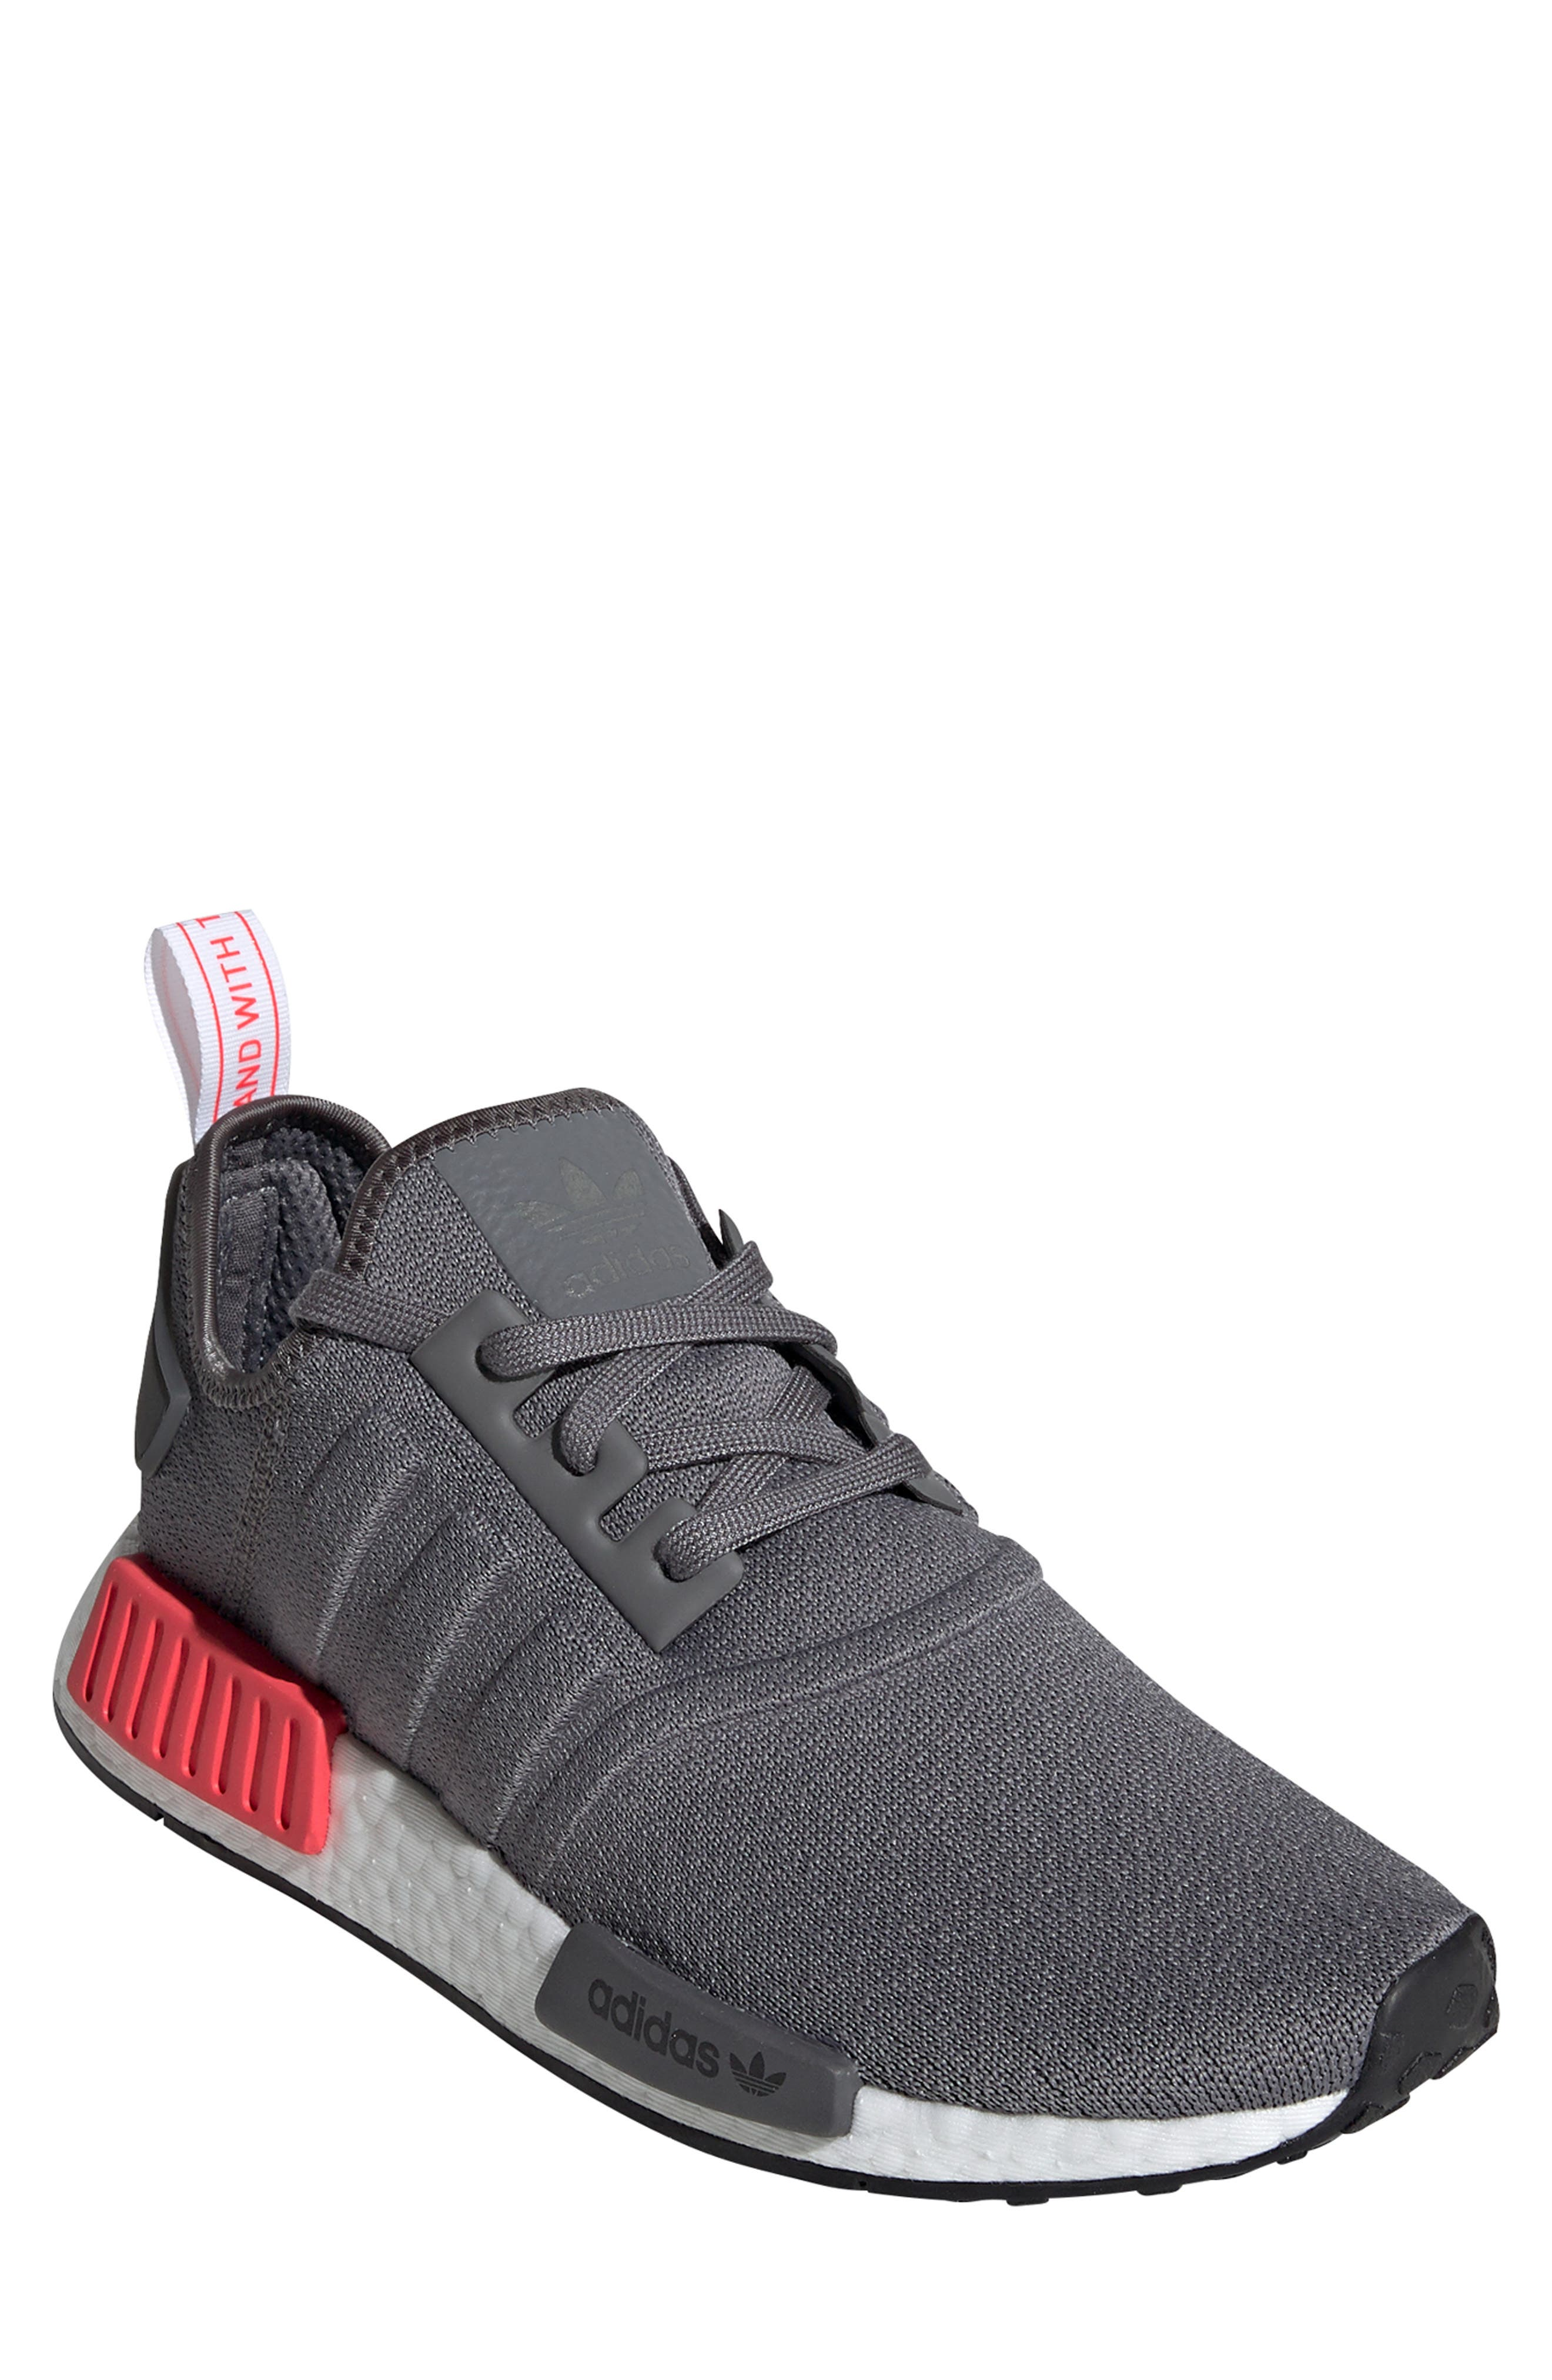 Image of adidas NMD_R1 Sneaker